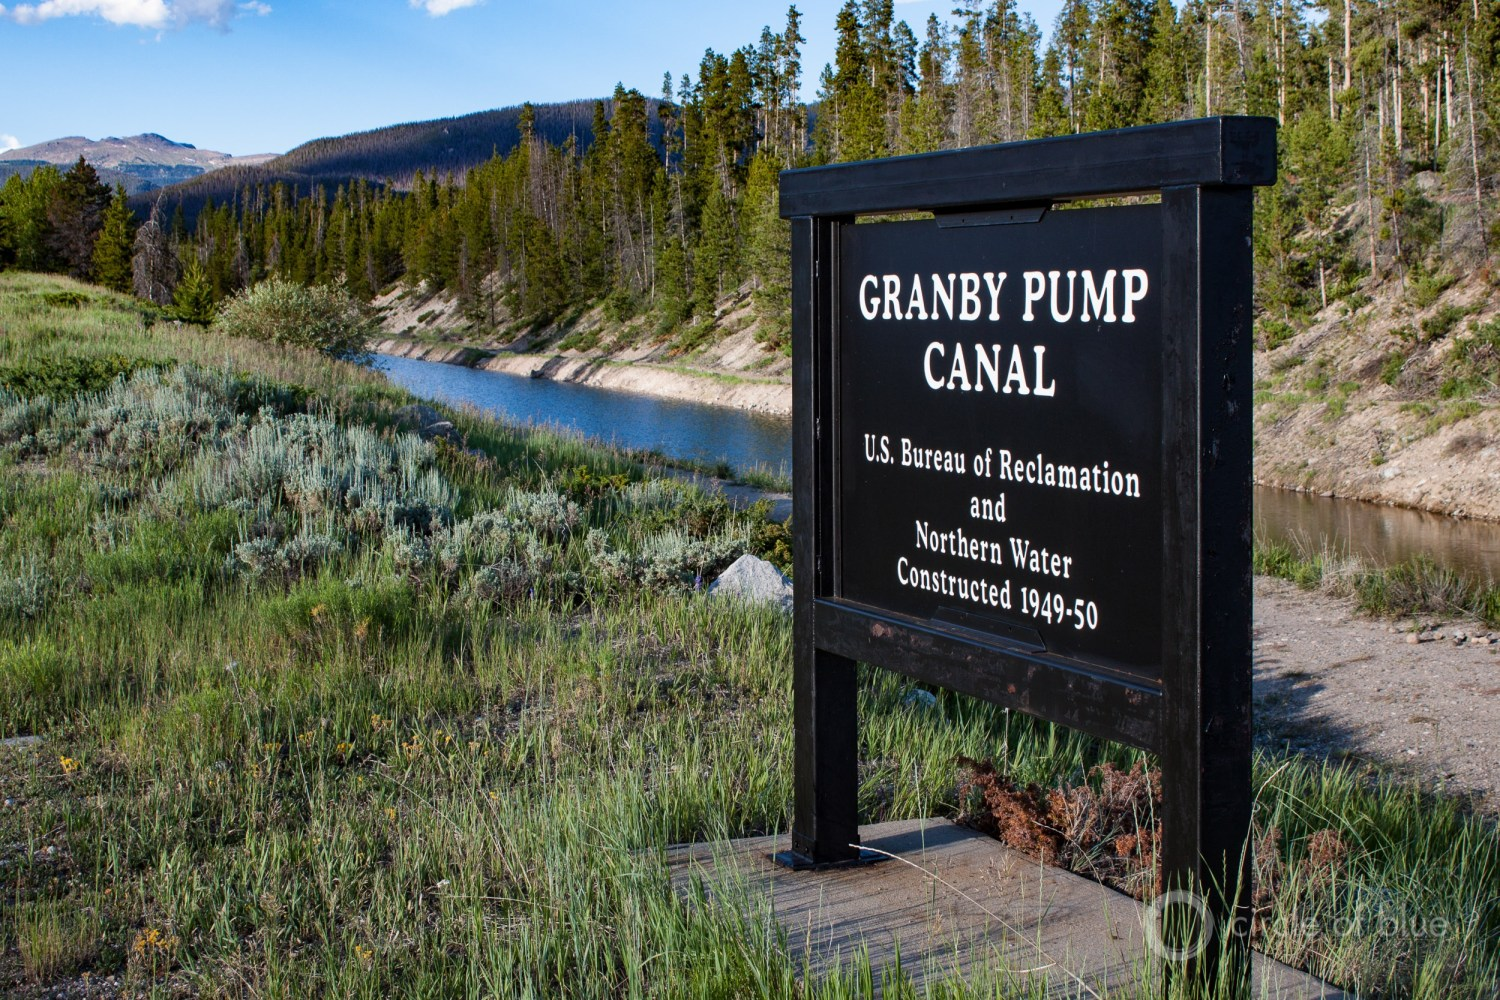 The Bureau of Reclamation owns more than 8,100 miles of canals, including the Granby Pump Canal, in Colorado. Photo © Brett Walton / Circle of Blue